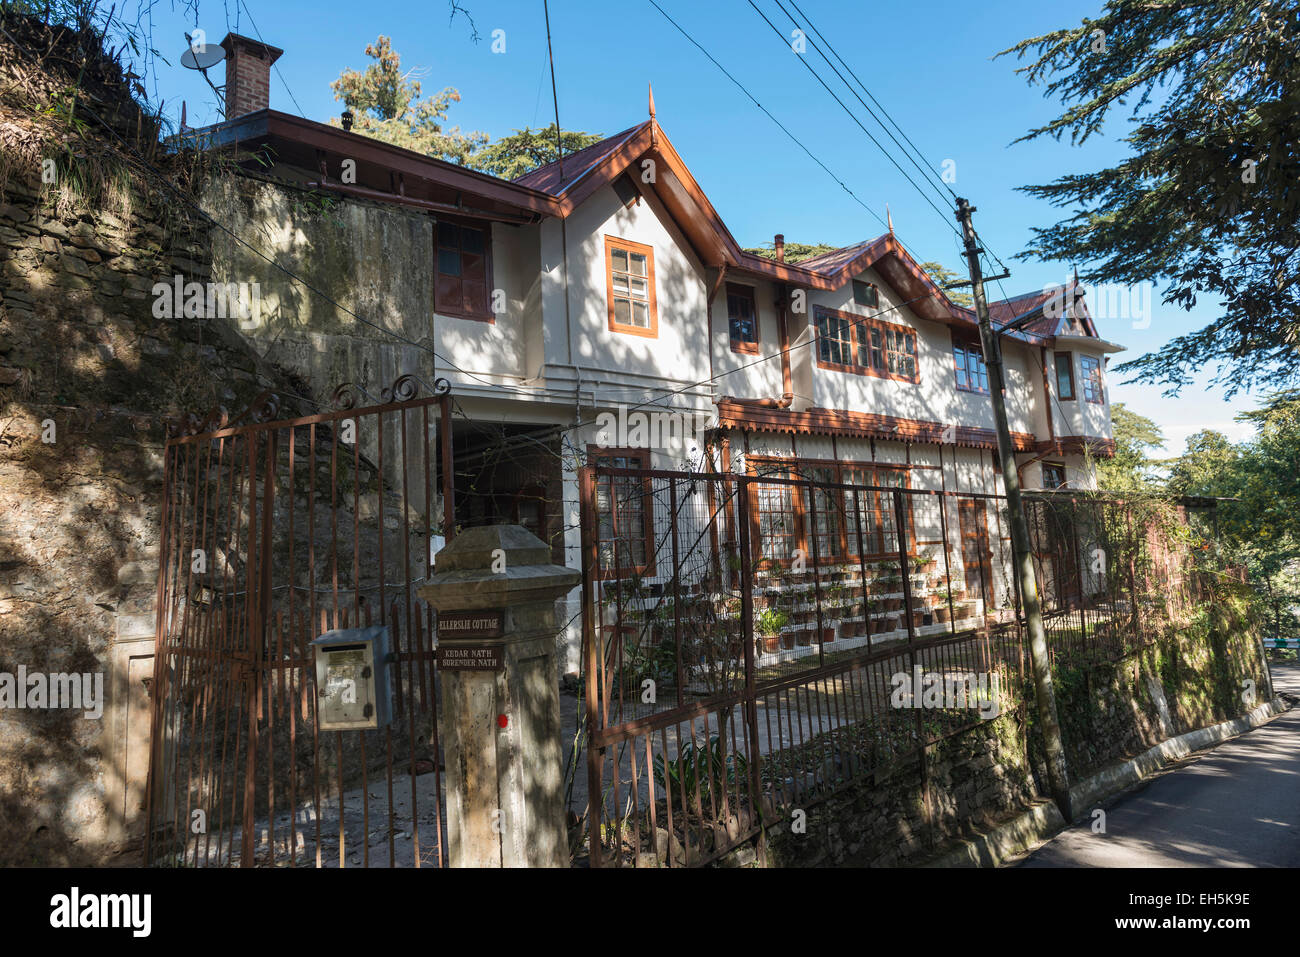 Ellerslie Cottage between Shimla and Anandale, Himachal Pradesh, India - Stock Image